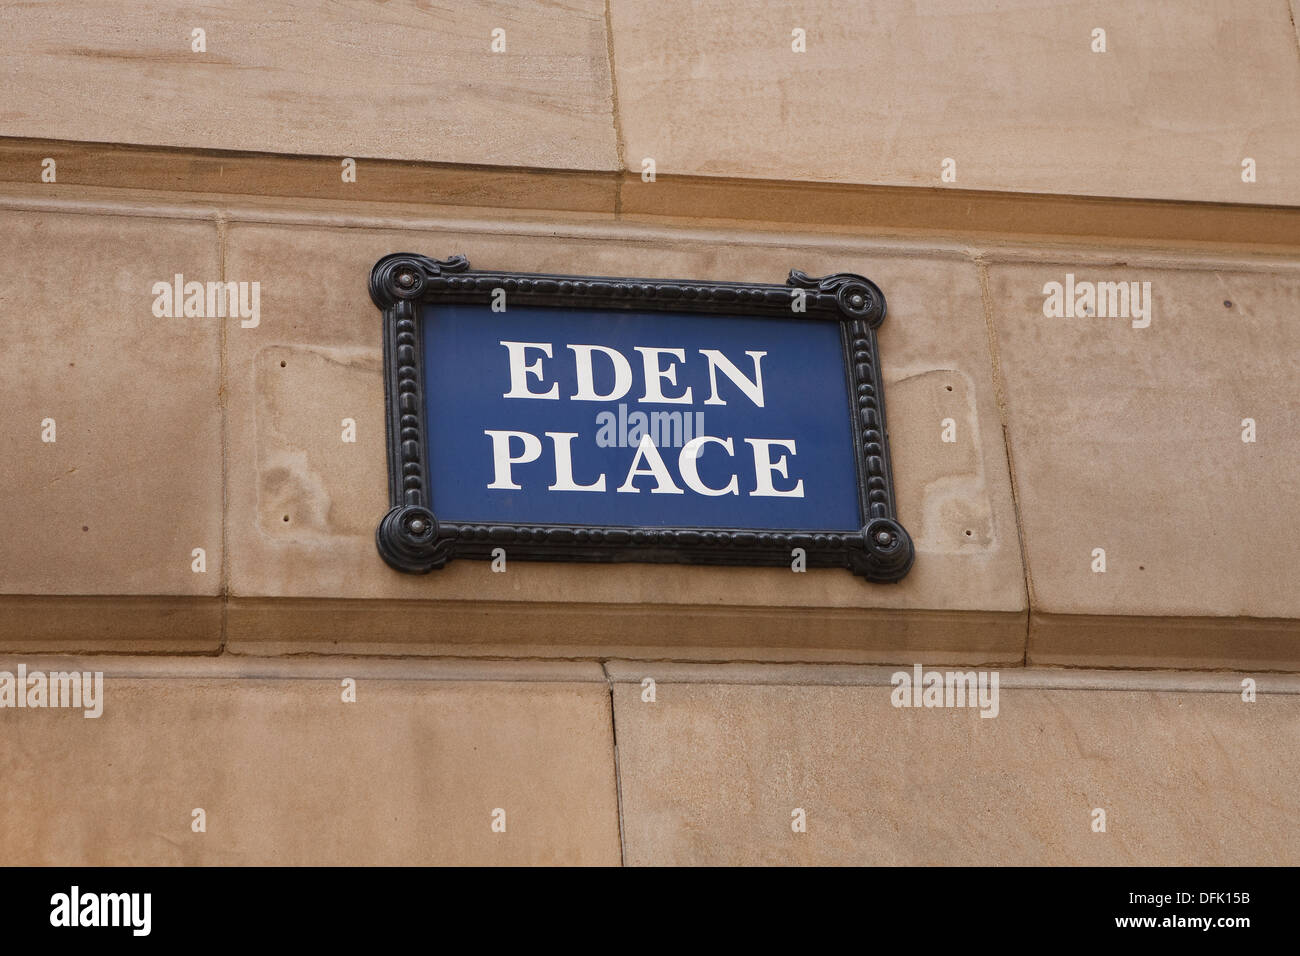 Eden Place wall sign In Birmingham UK - Stock Image